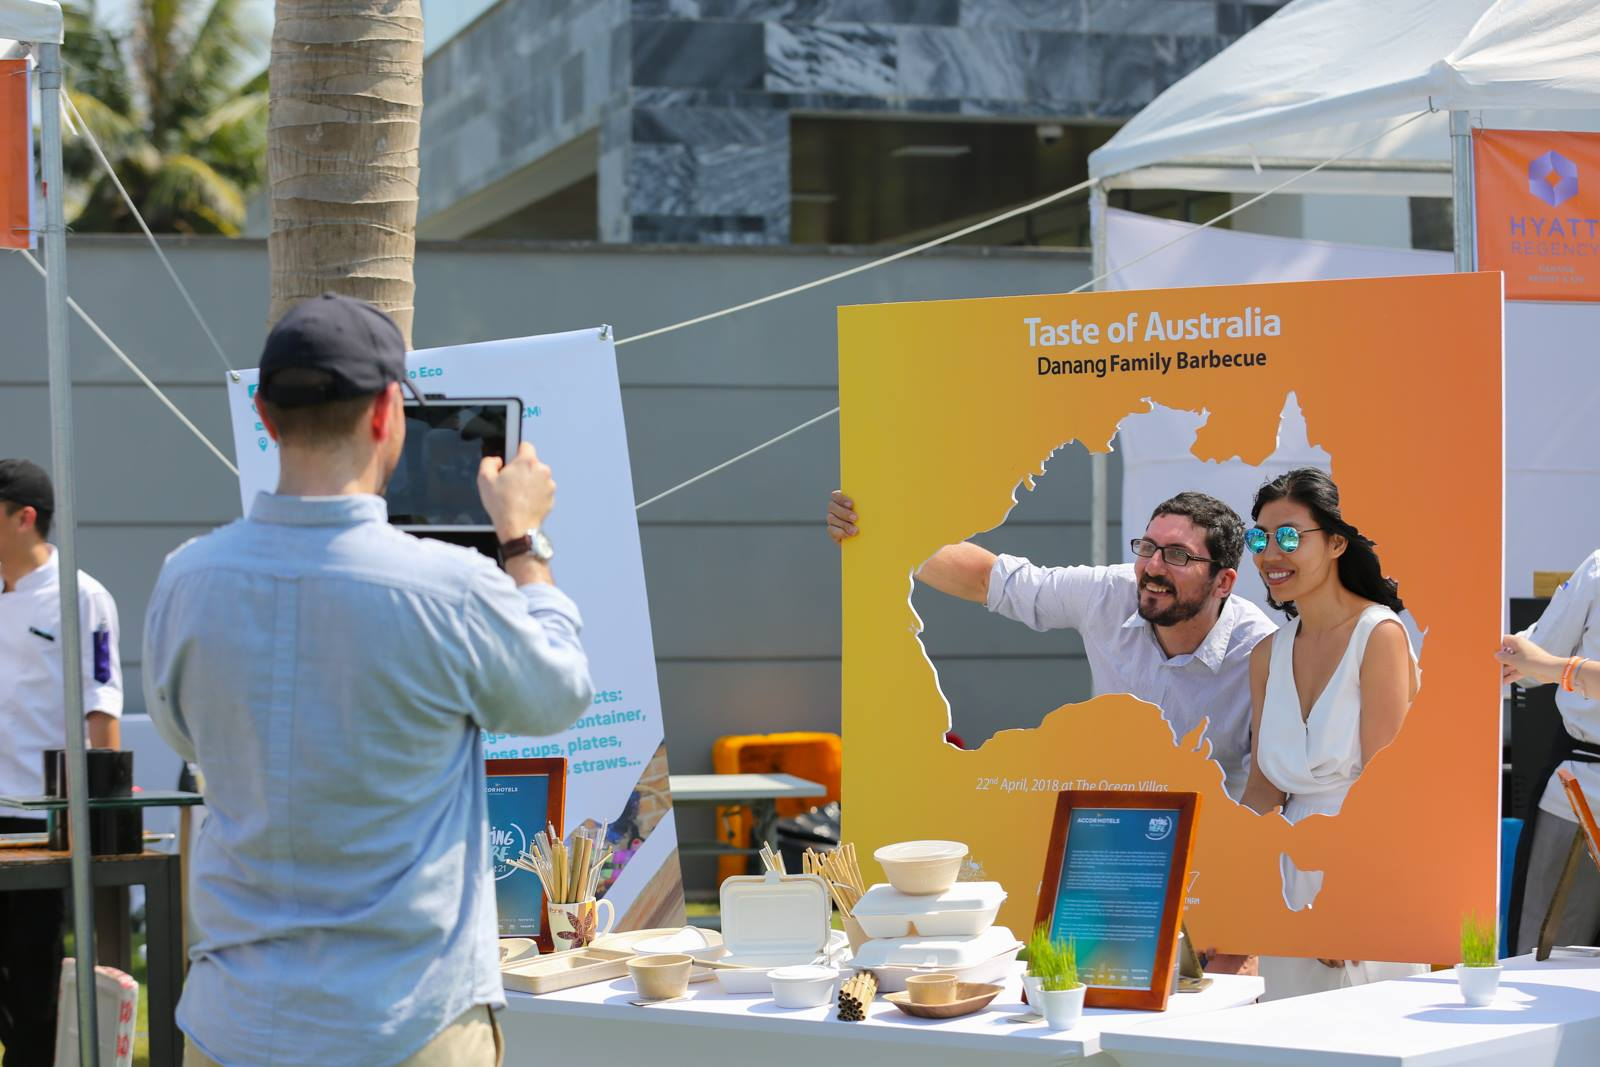 Consumer events, like this one featuring a Taste of Australia. Photo source: Austrade.